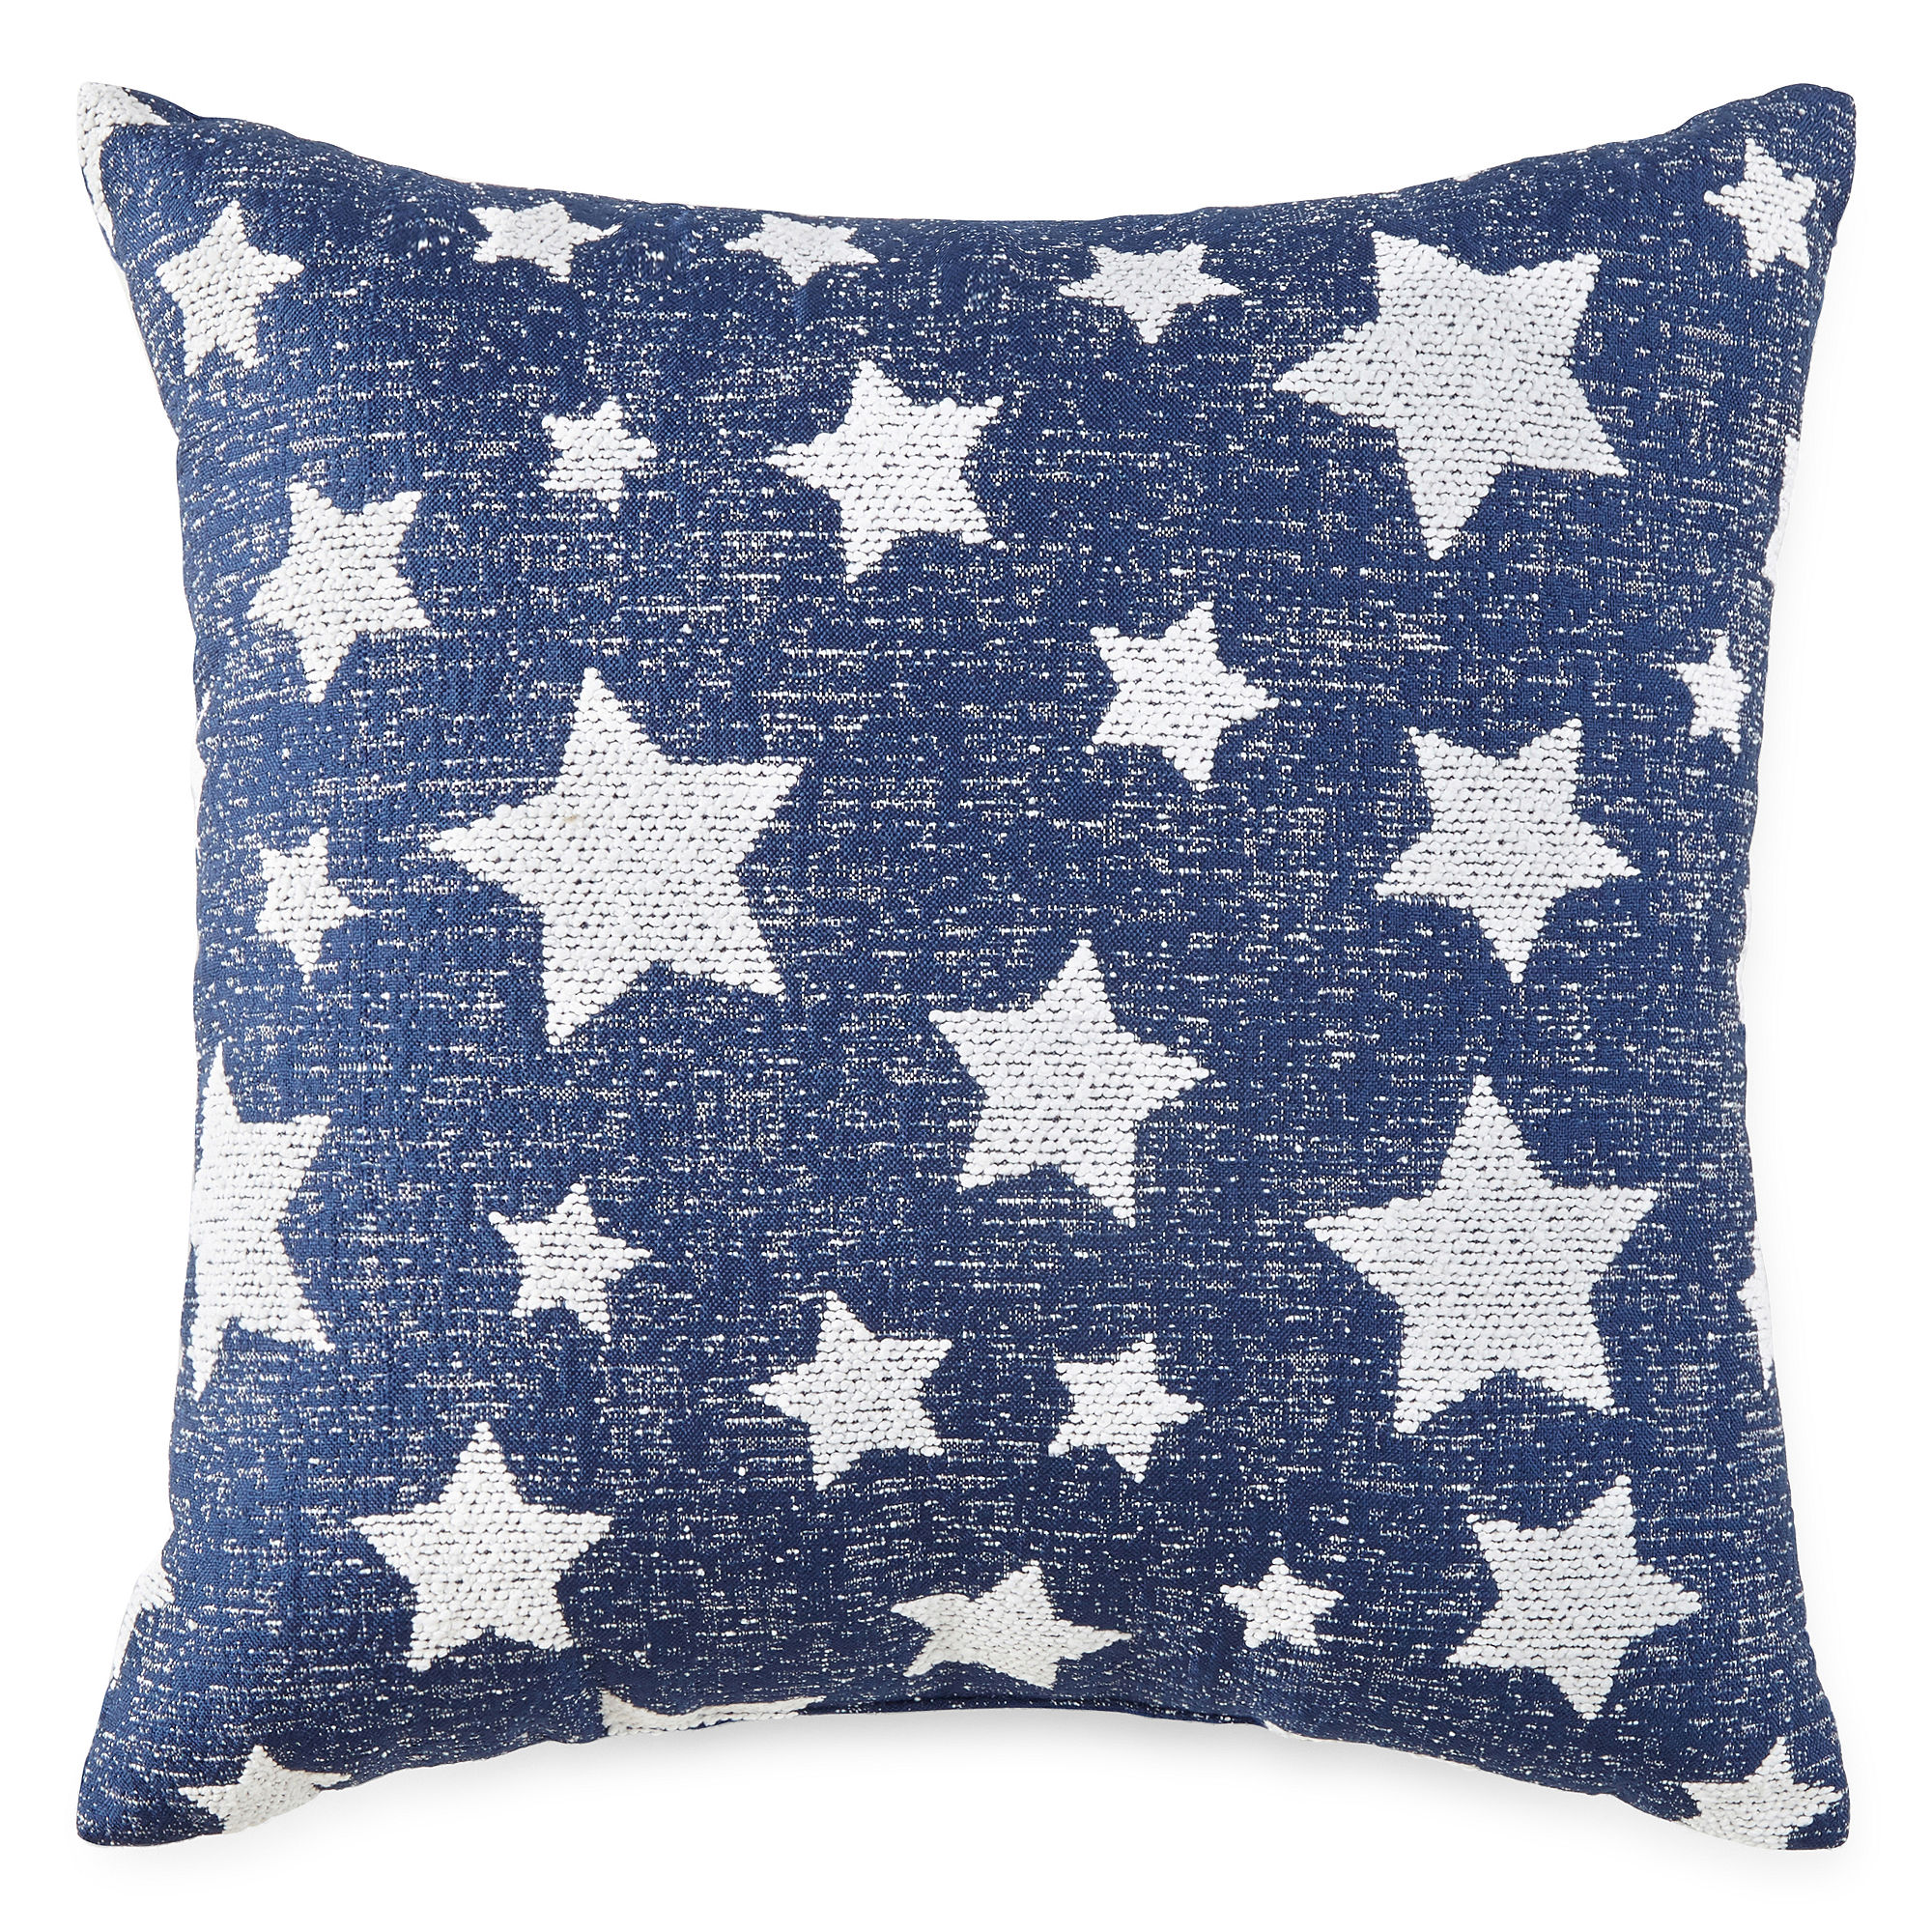 Jcpenney Decorative Pillow : UPC 073705010018 - JCPenney Home American Stars Square Decorative Pillow upcitemdb.com